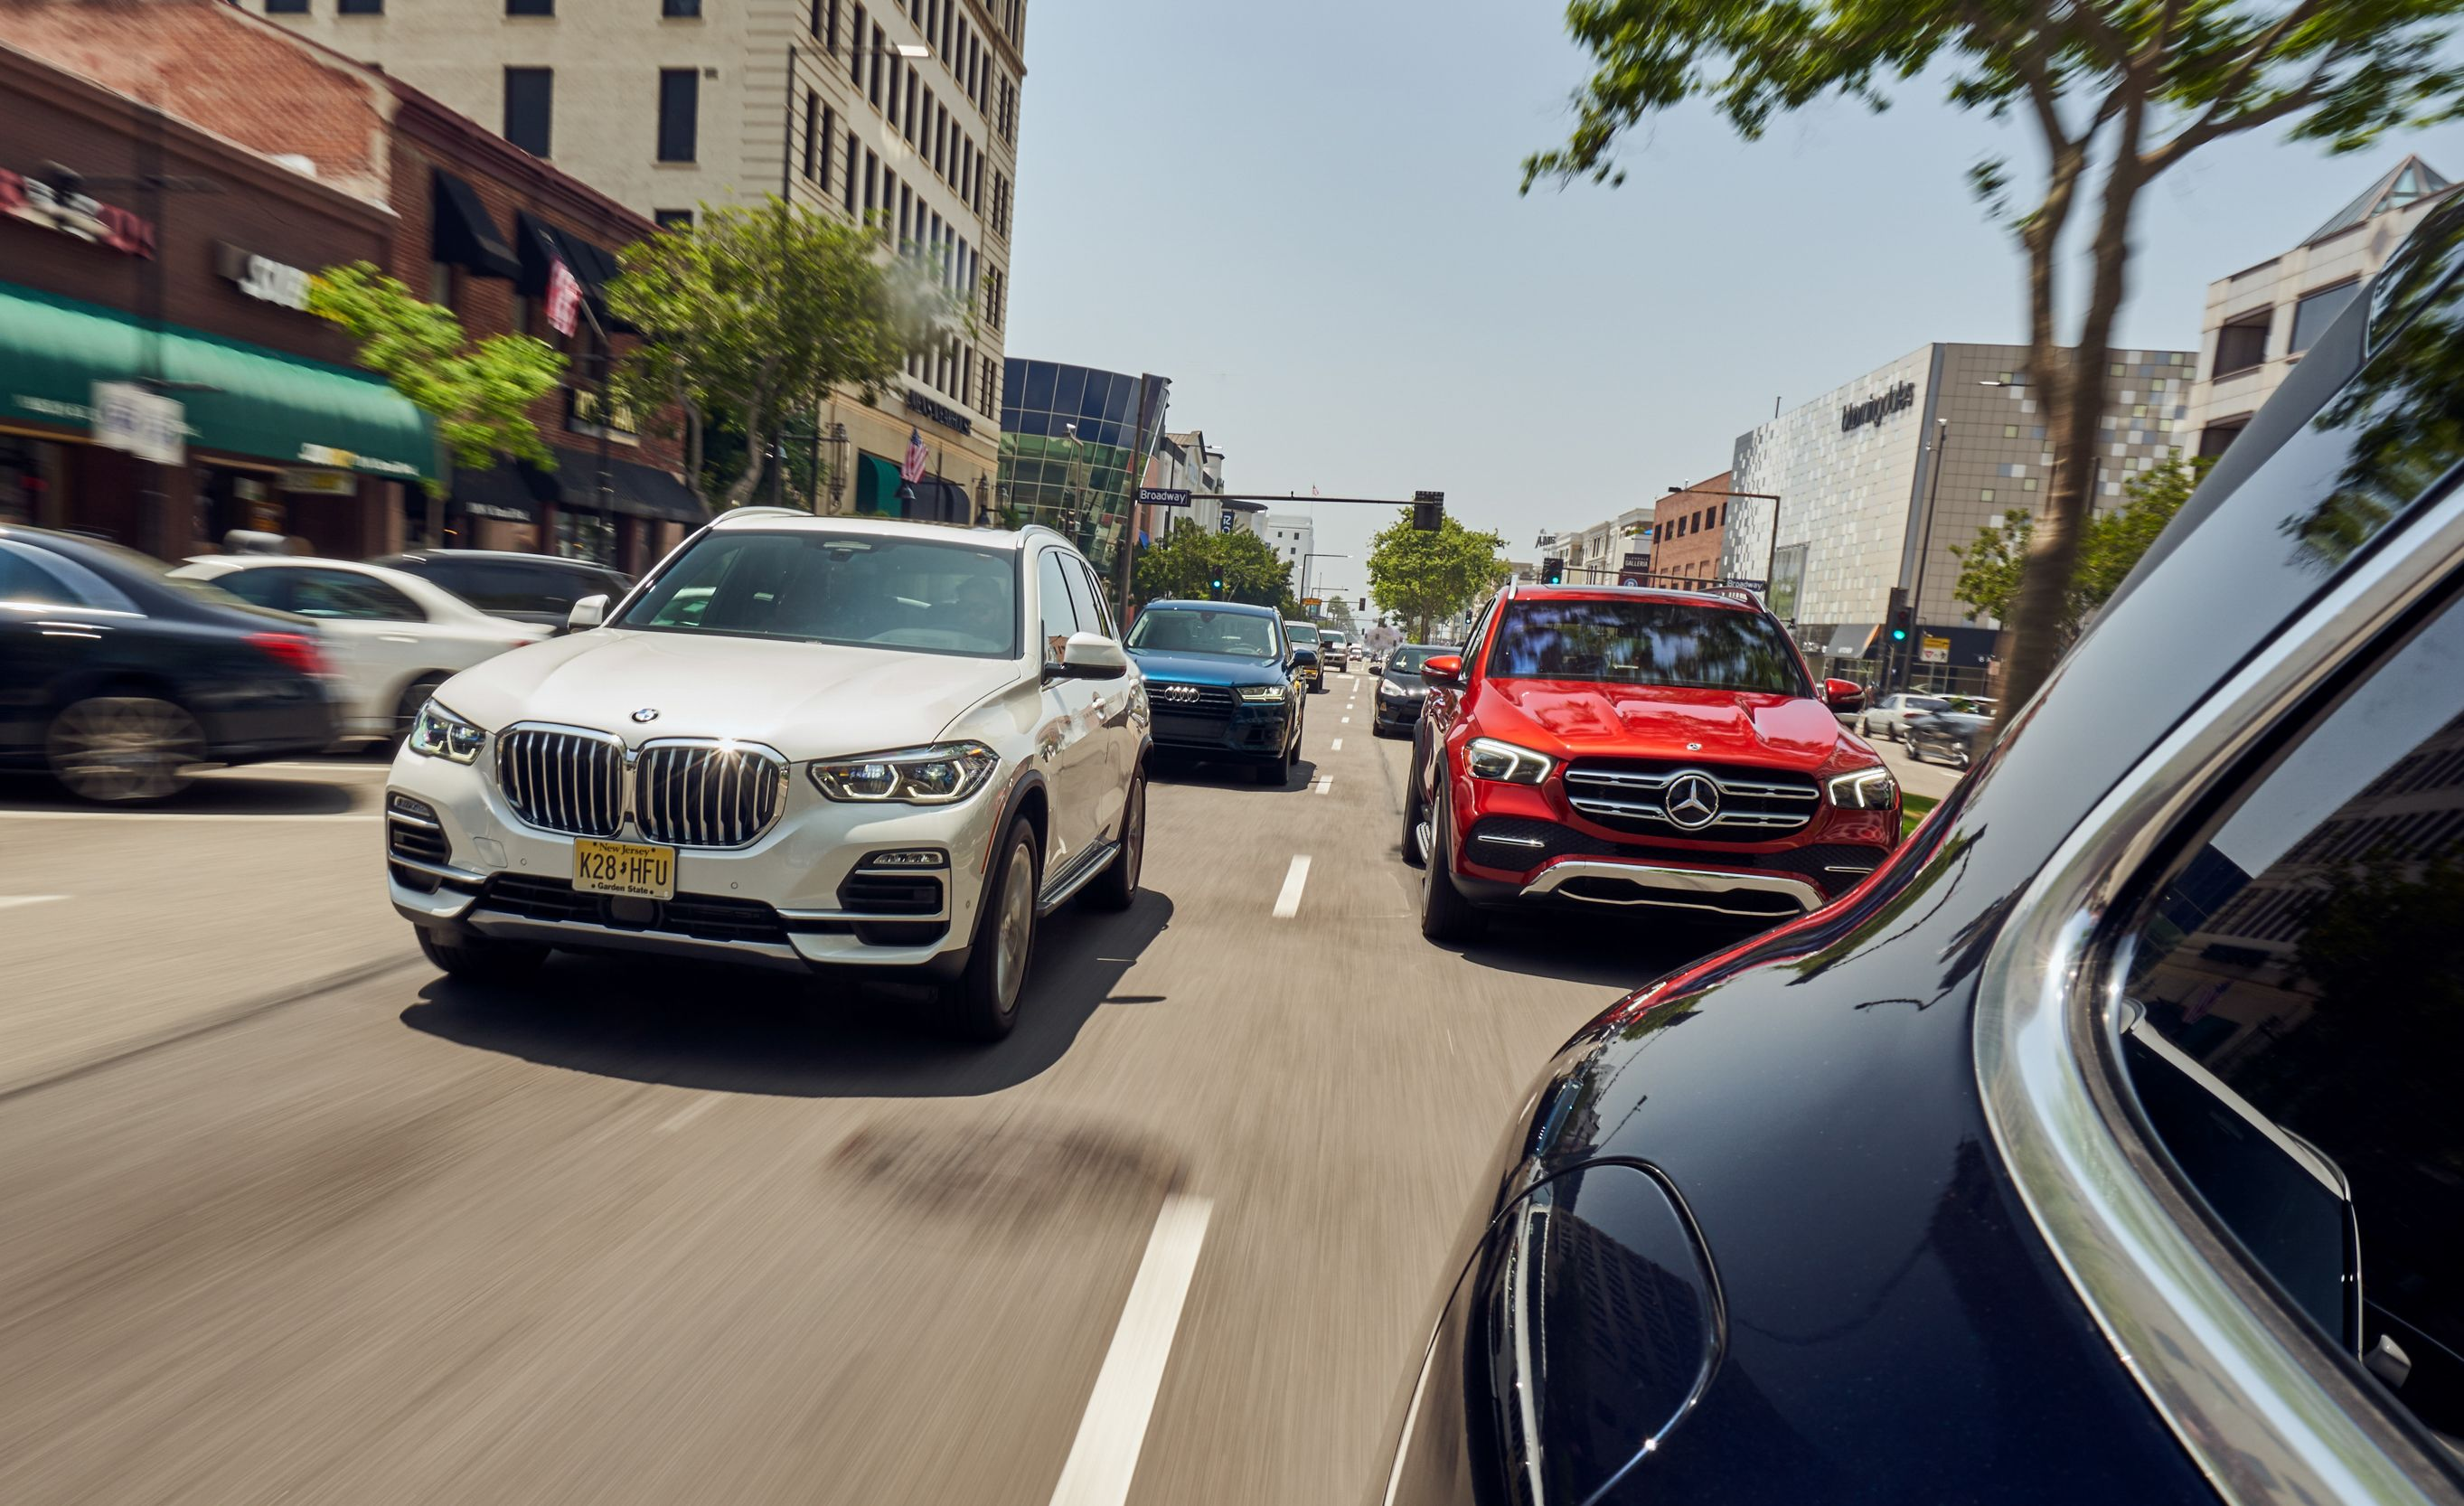 2019 Bmw X5 Vs 2020 Mercedes Gle Which Is The Better Luxury Suv